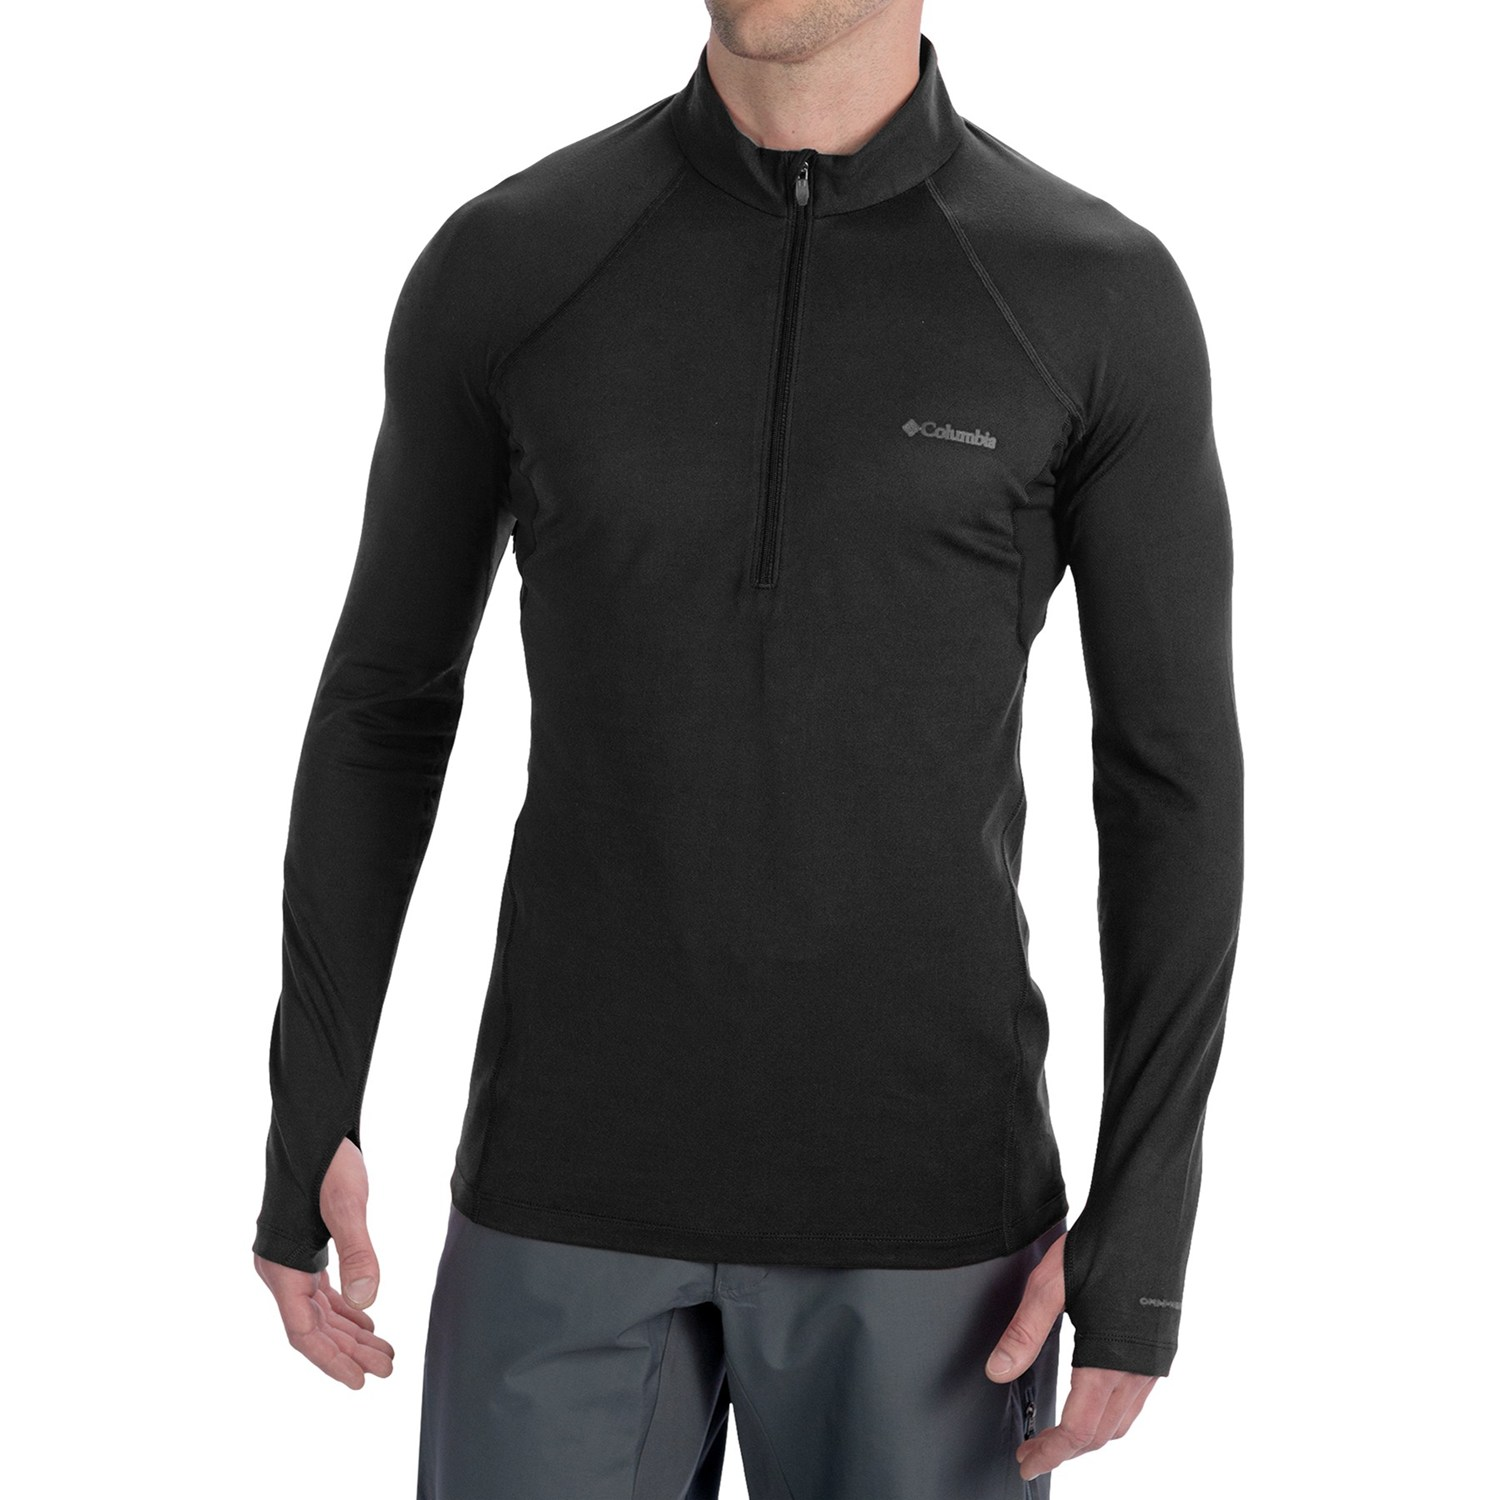 Термофутболка мужская Columbia Expeditor Extreme Omni-Heat Fleece